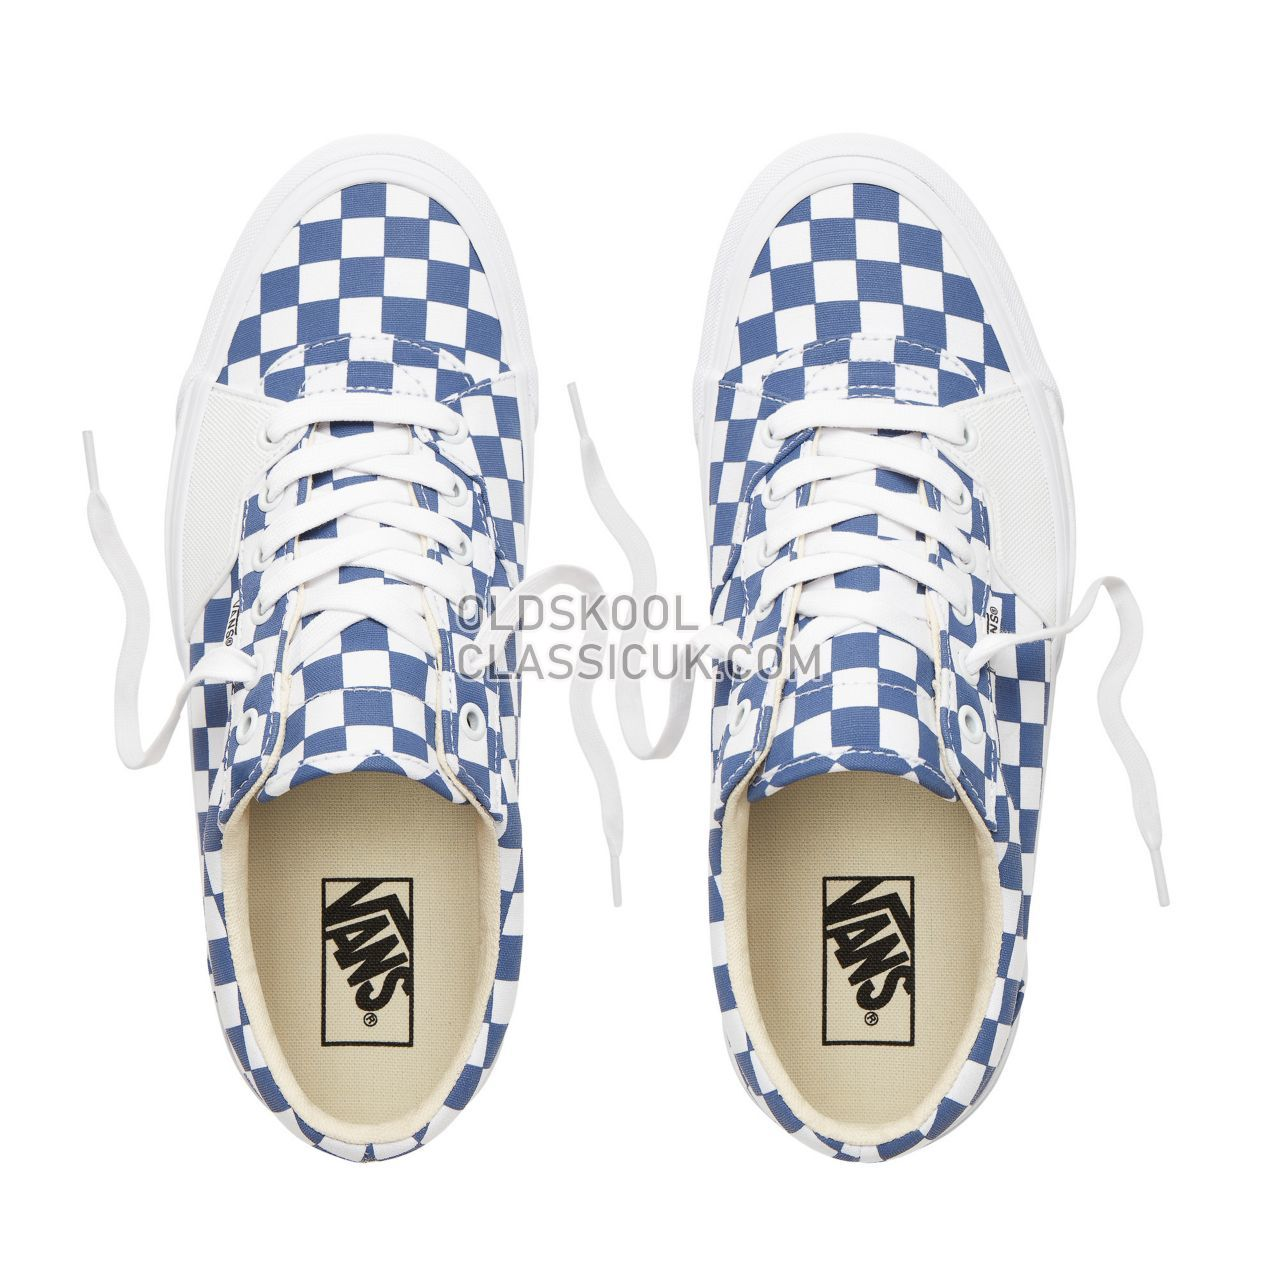 Vans Checkerboard Style 205 Sneakers Mens (Checkerboard) True Navy/True White VN0A3DPTUR4 Shoes